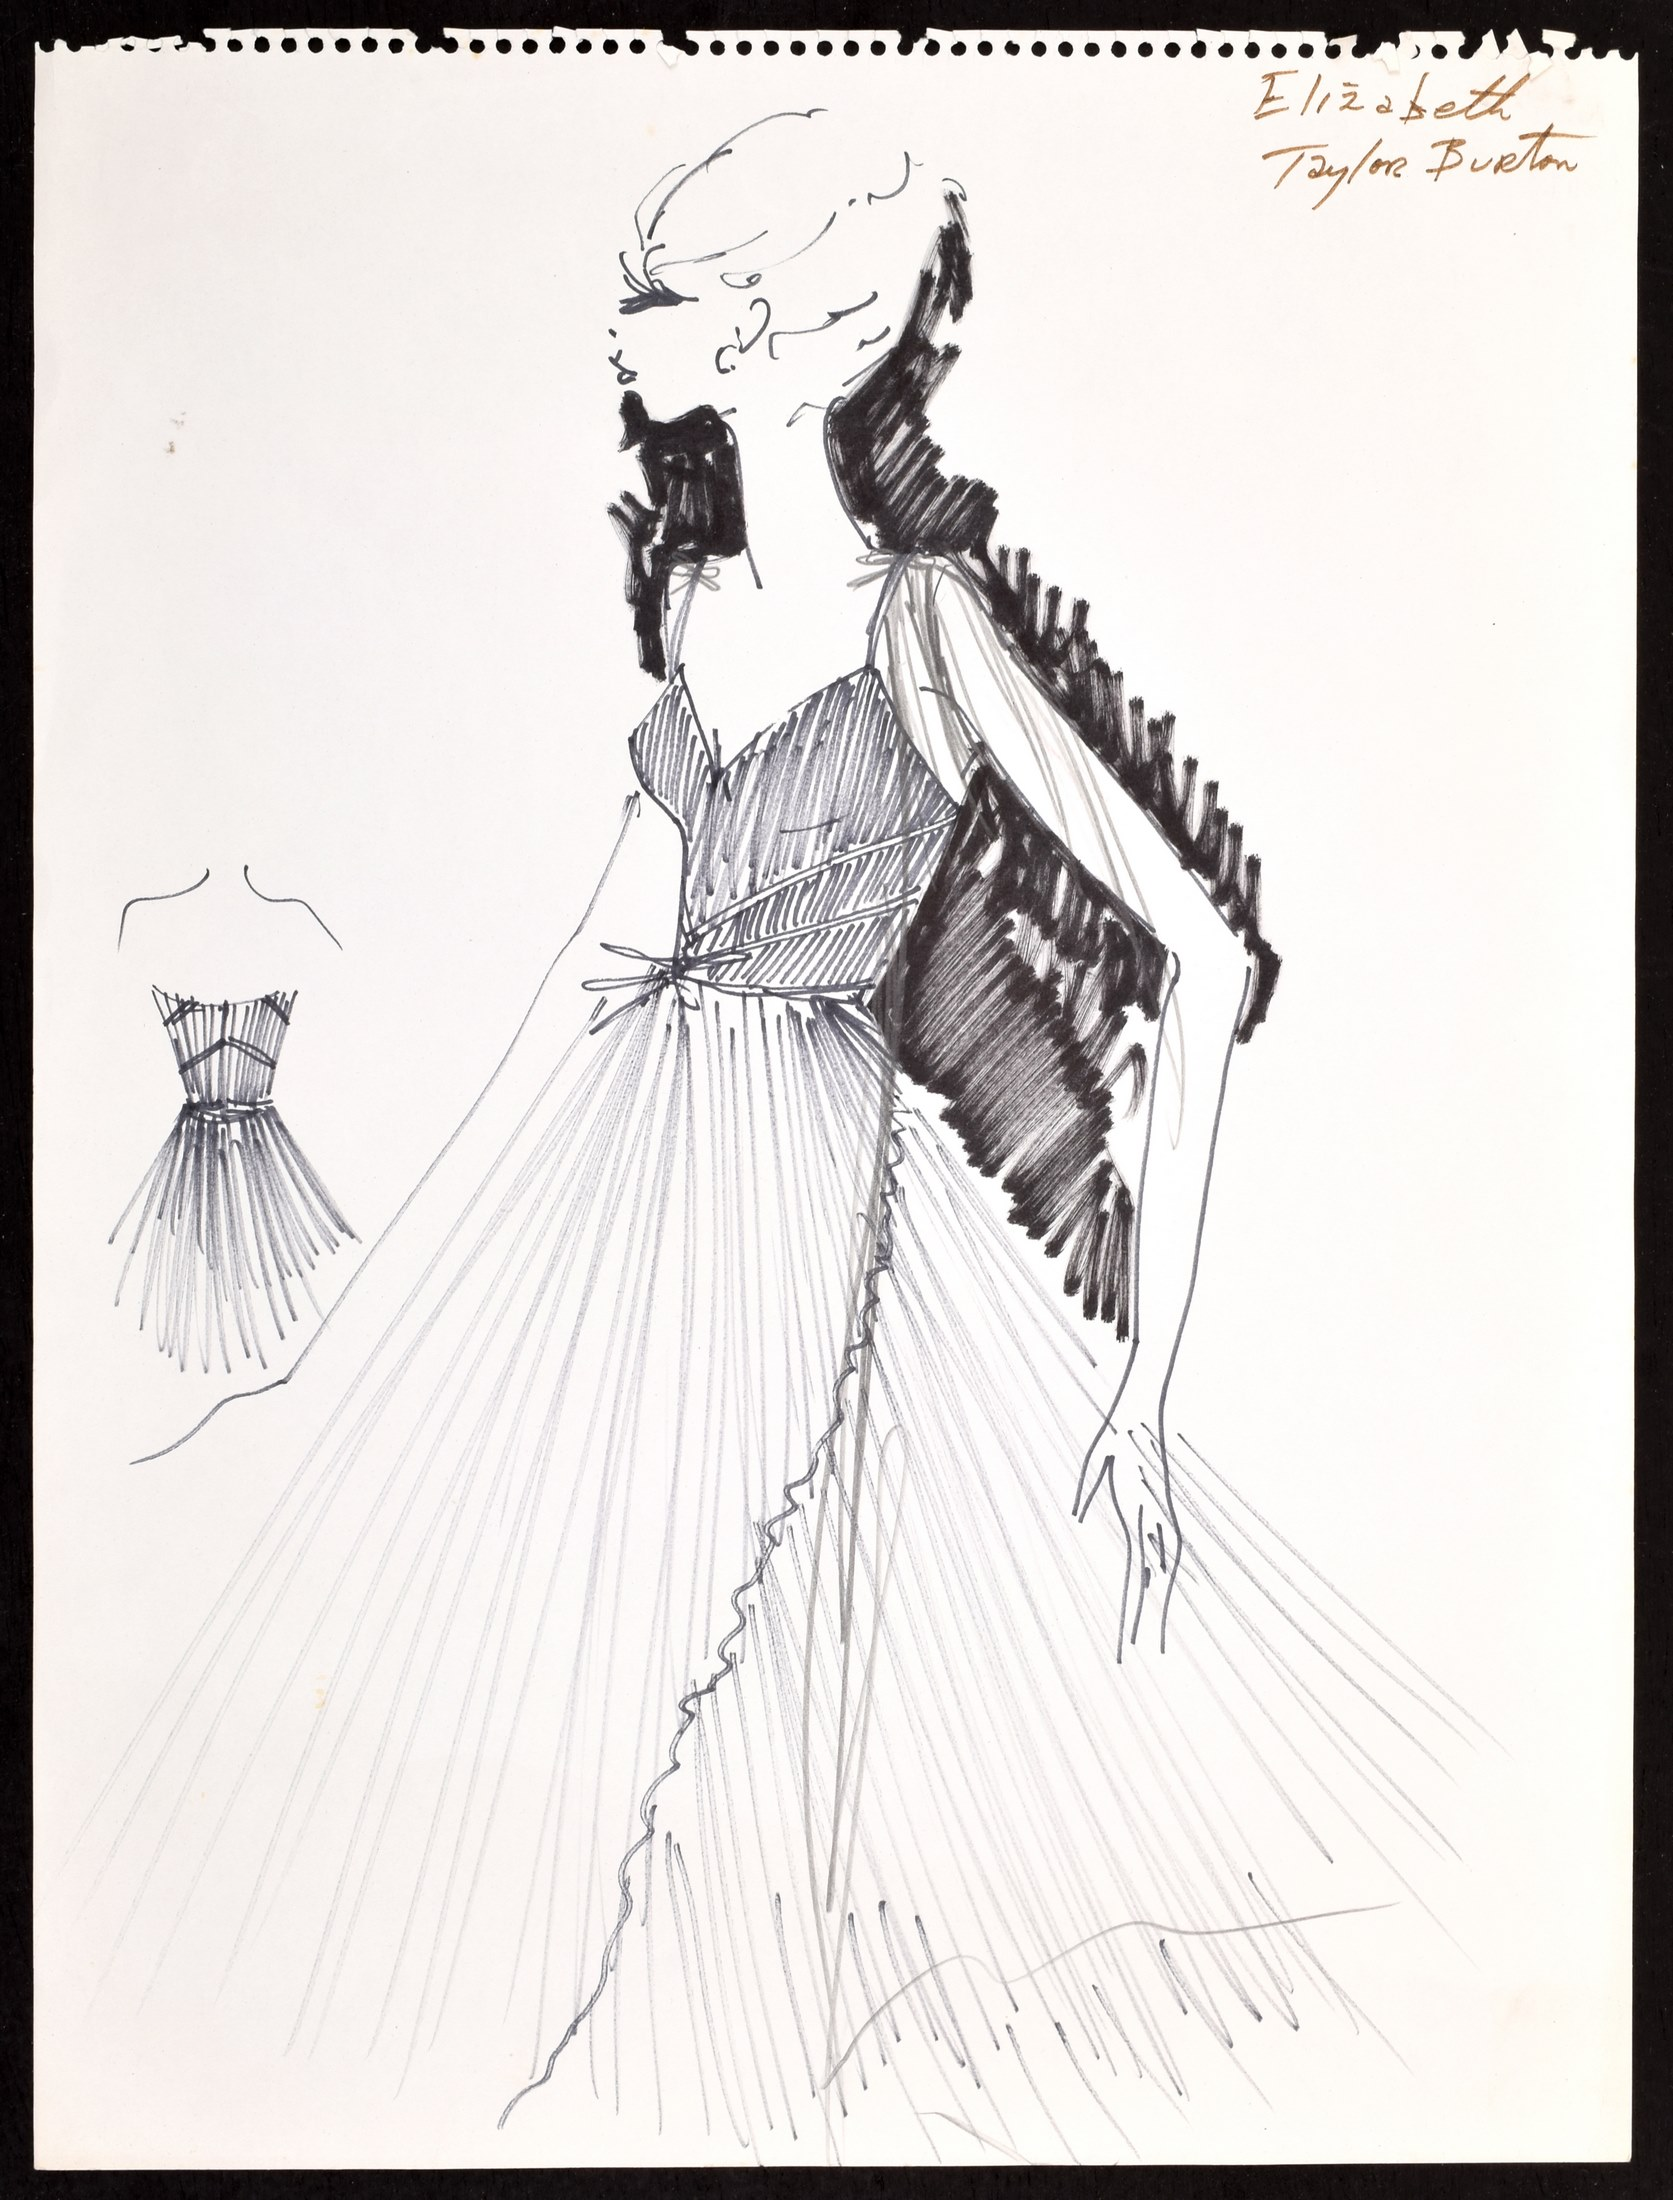 Large 1960s hand-drawn, hand-annotated original fashion drawing created by Karl Lagerfeld (German, 1933-2019) for a dress he designed for 'Elizabeth Taylor Burton' while at the House of Tiziani, Rome. Estimate: $1,000-$3,000